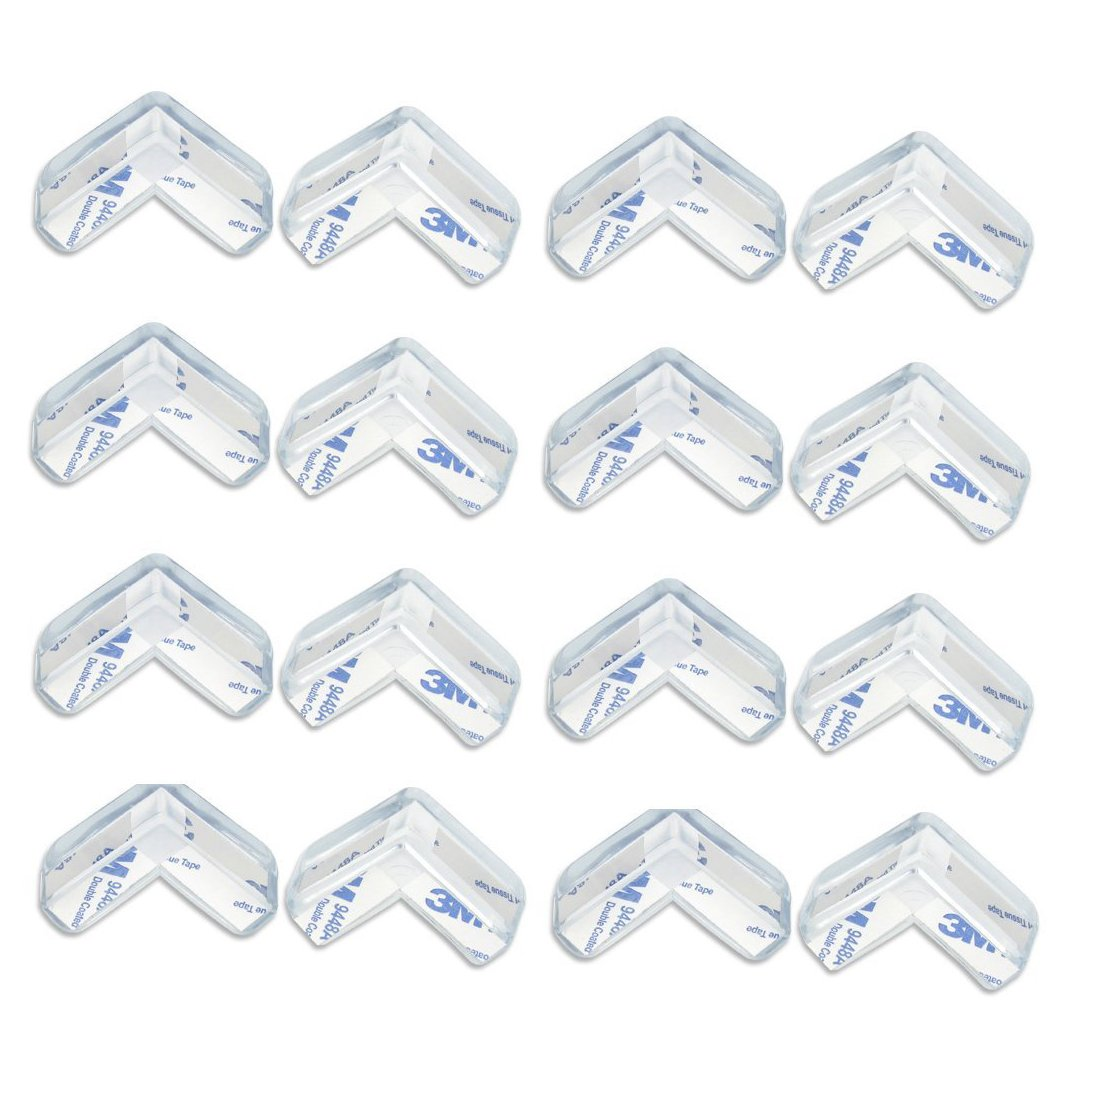 TraderPlus 4-Pack Clear Edge Cushion & Corner Guard Set - Baby Proofing, Home Safety Furniture Bumpe